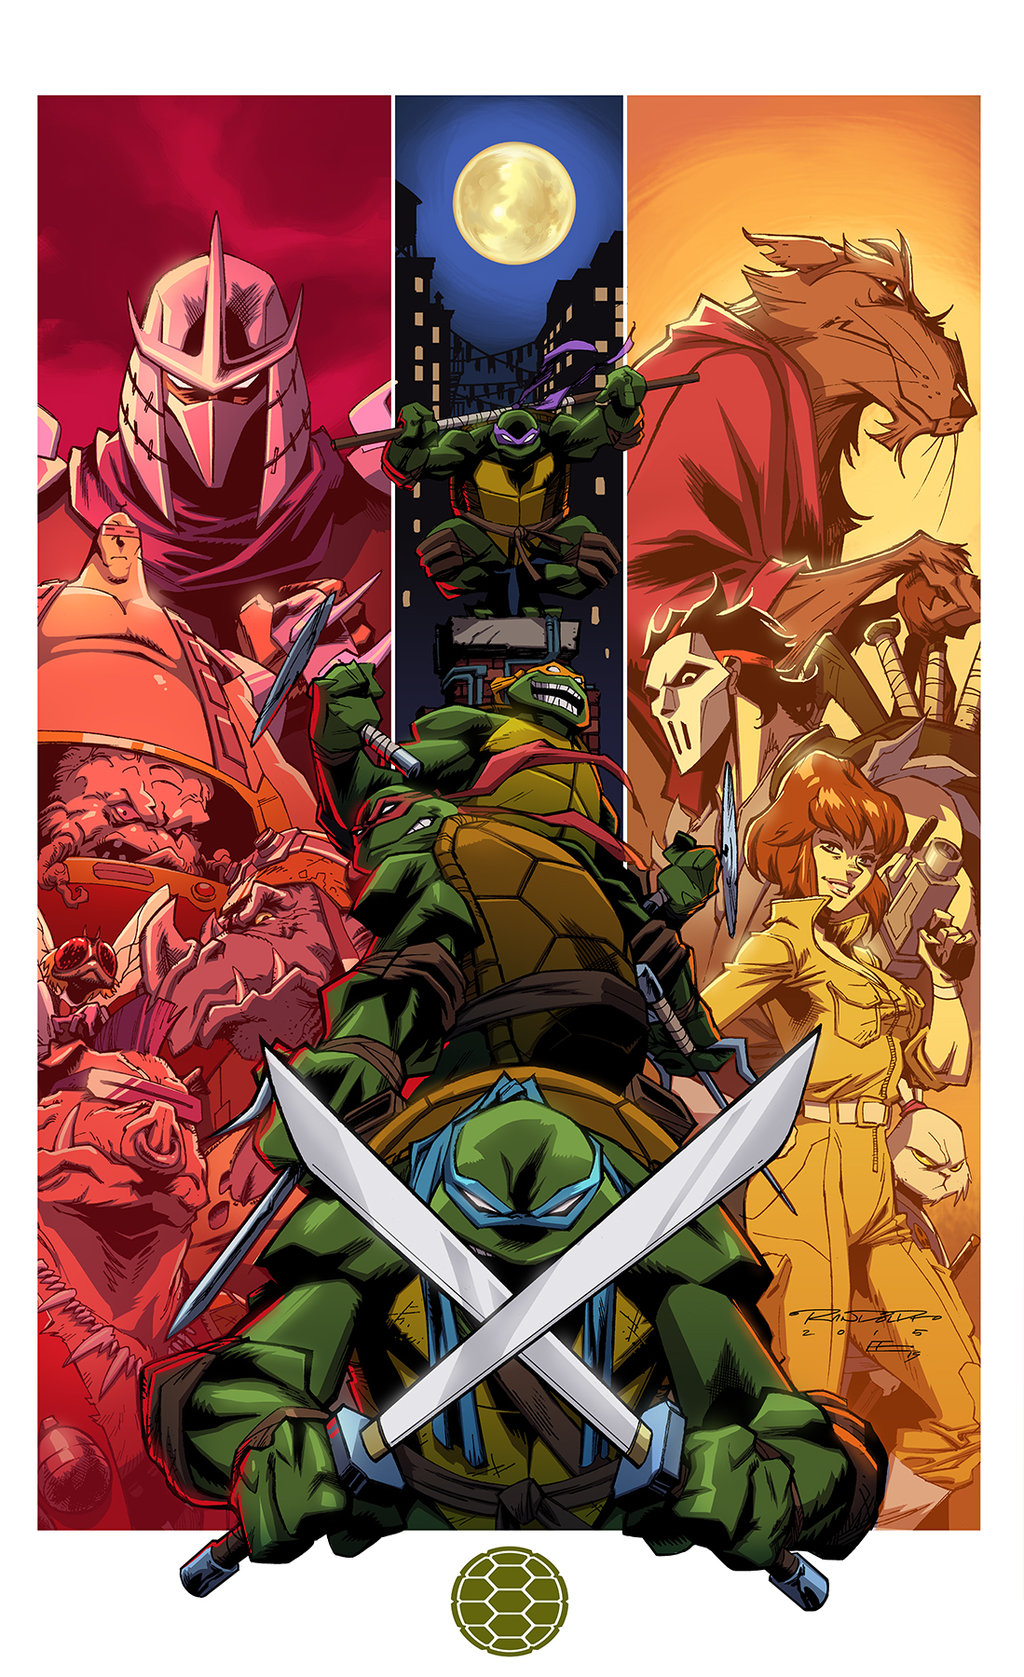 TMNT (2003 versions) and supporting cast (1987 versions). Print by Khary Randolph and Emilio Lopez